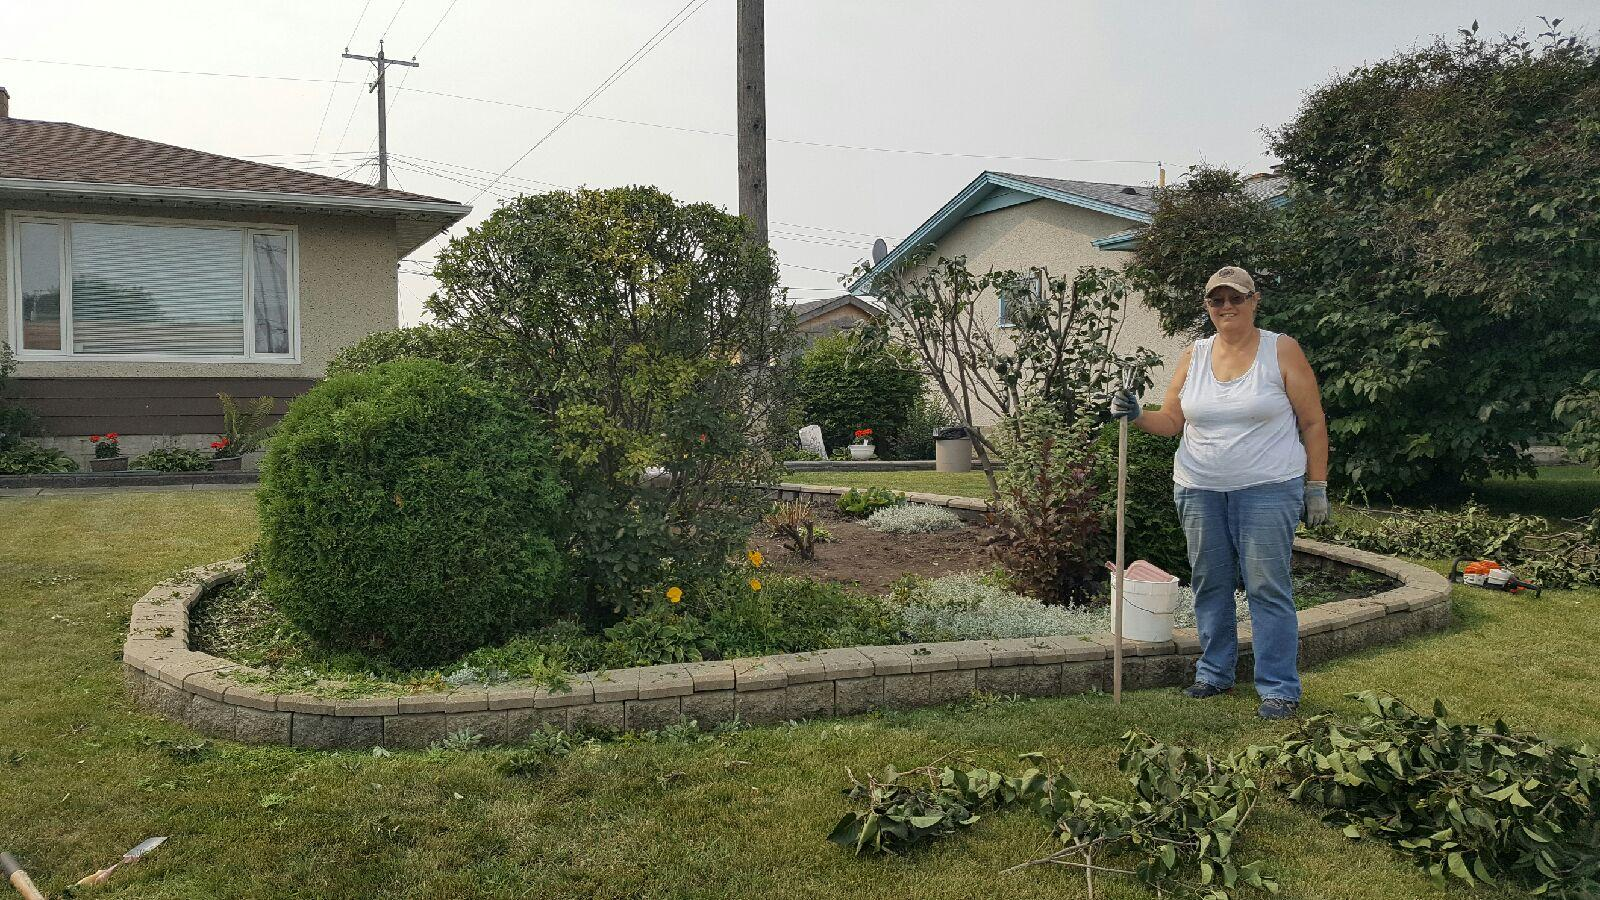 Yard care and landscaping